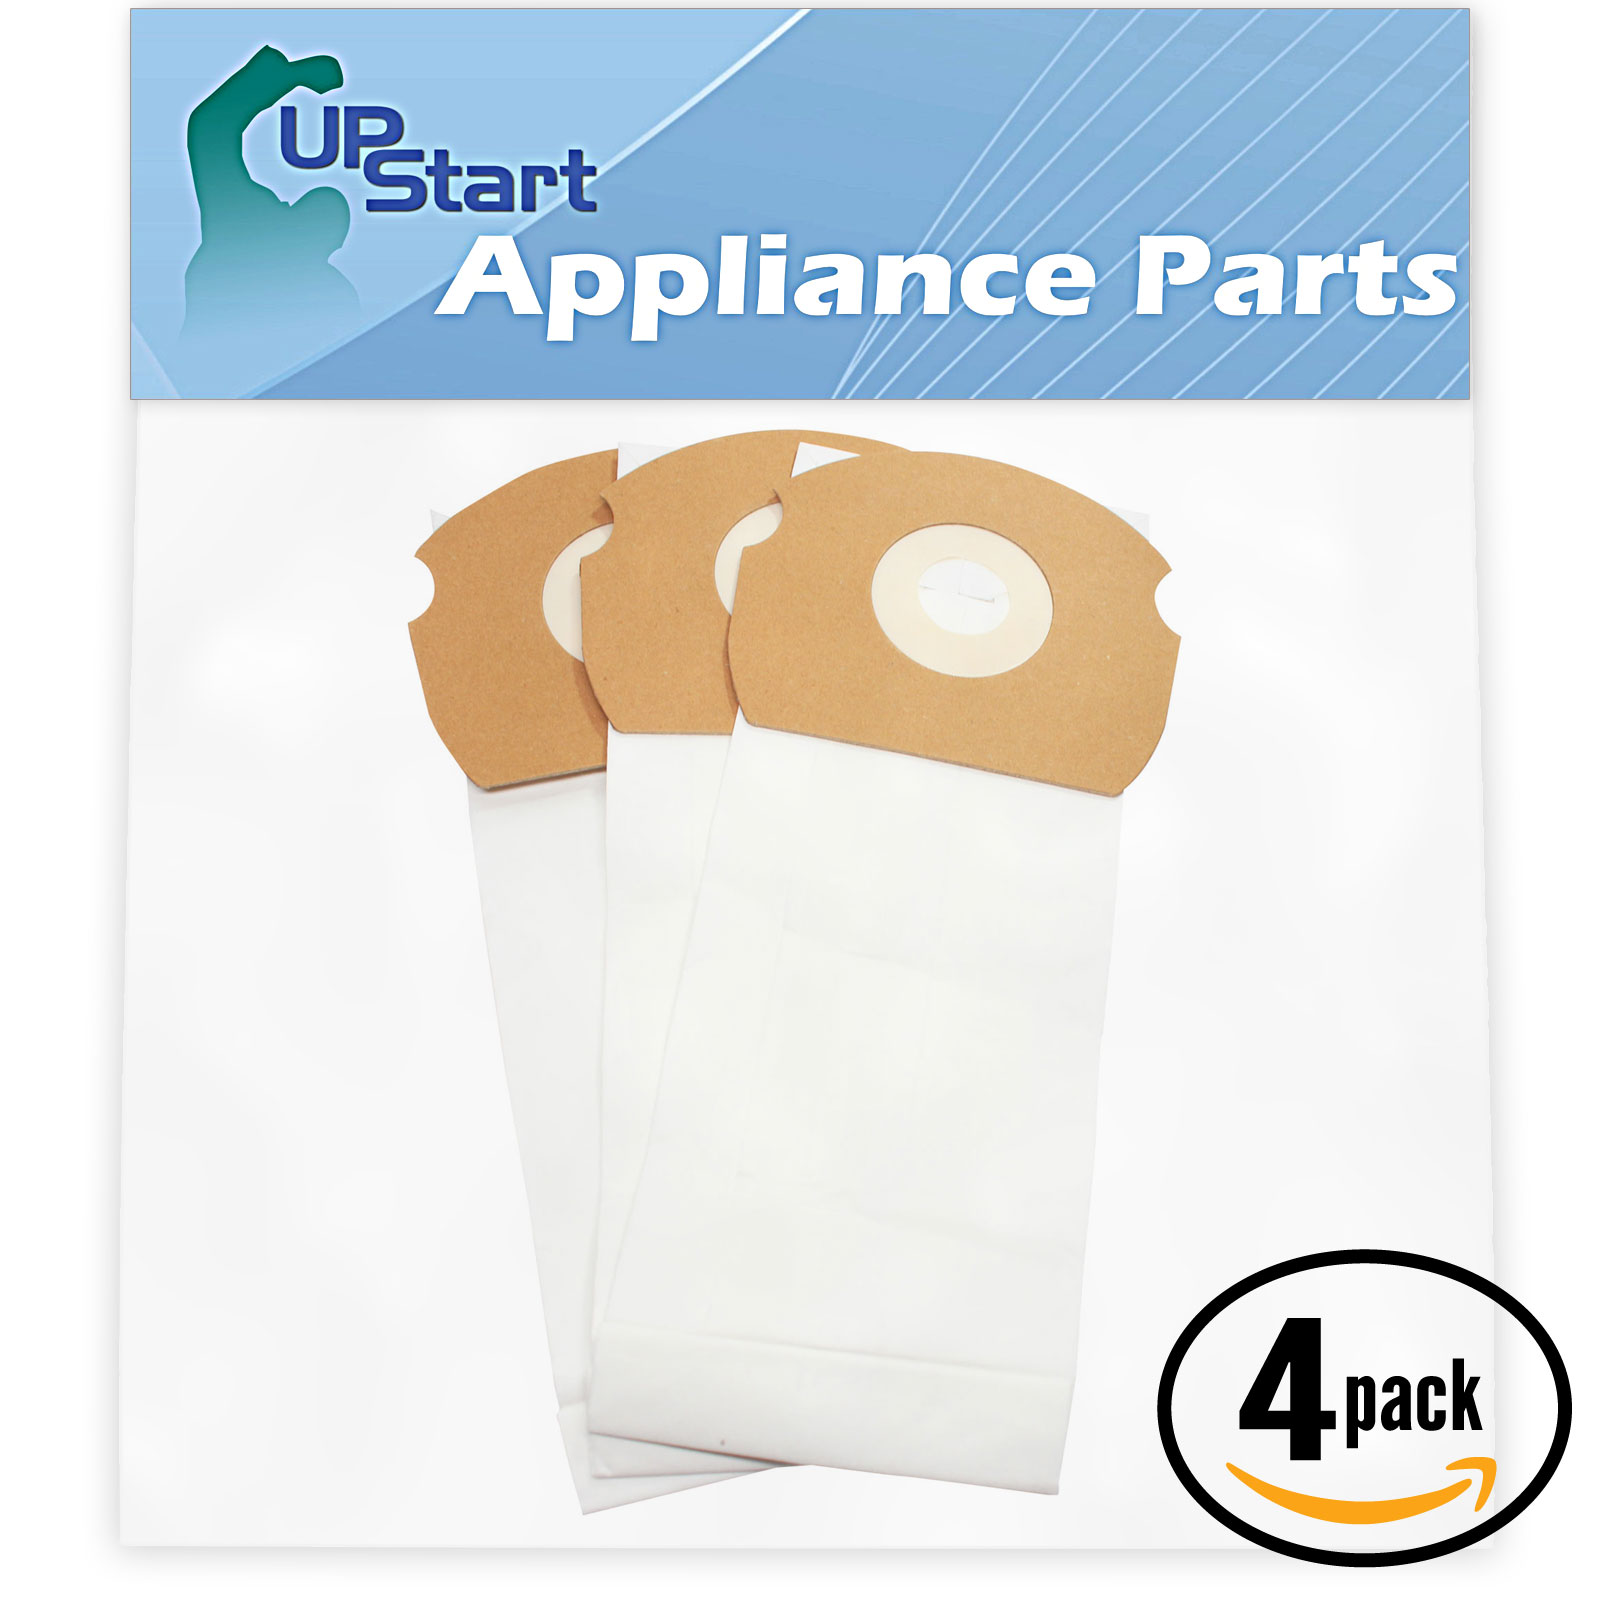 12 Replacement Eureka AirSpeed AS1055AX Vacuum Bags  - Compatible Eureka 68155, AS Vacuum Bags (4-Pack - 3 Vacuum Bags per Pack)